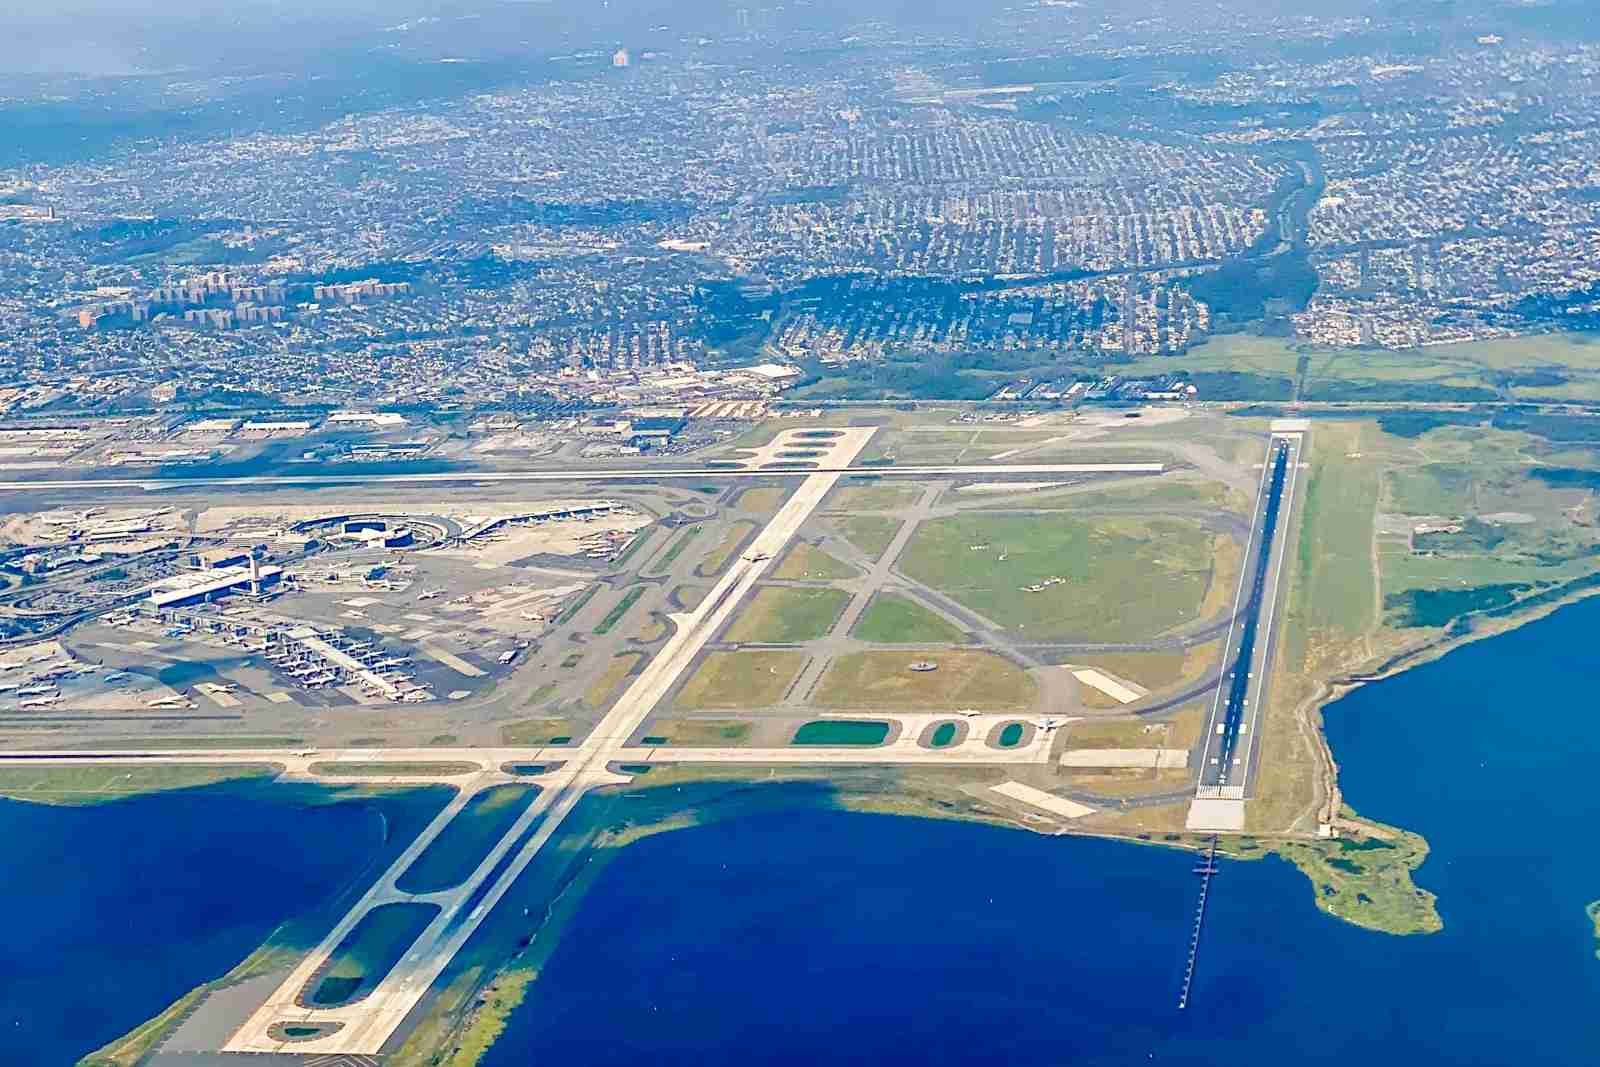 A view of JFK from above